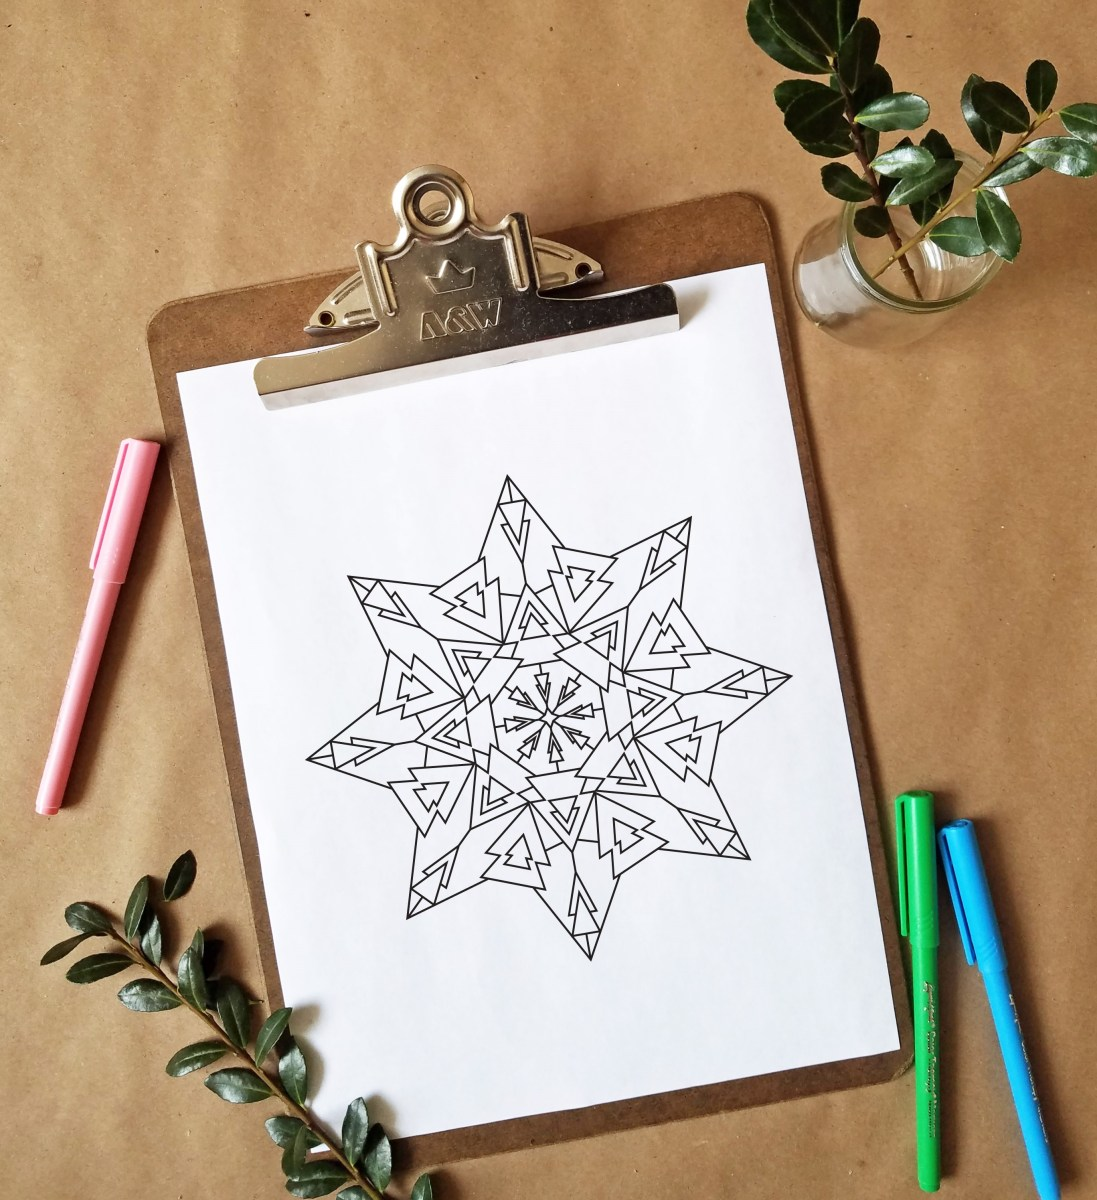 FREEbie Friday - Coloring Page 3